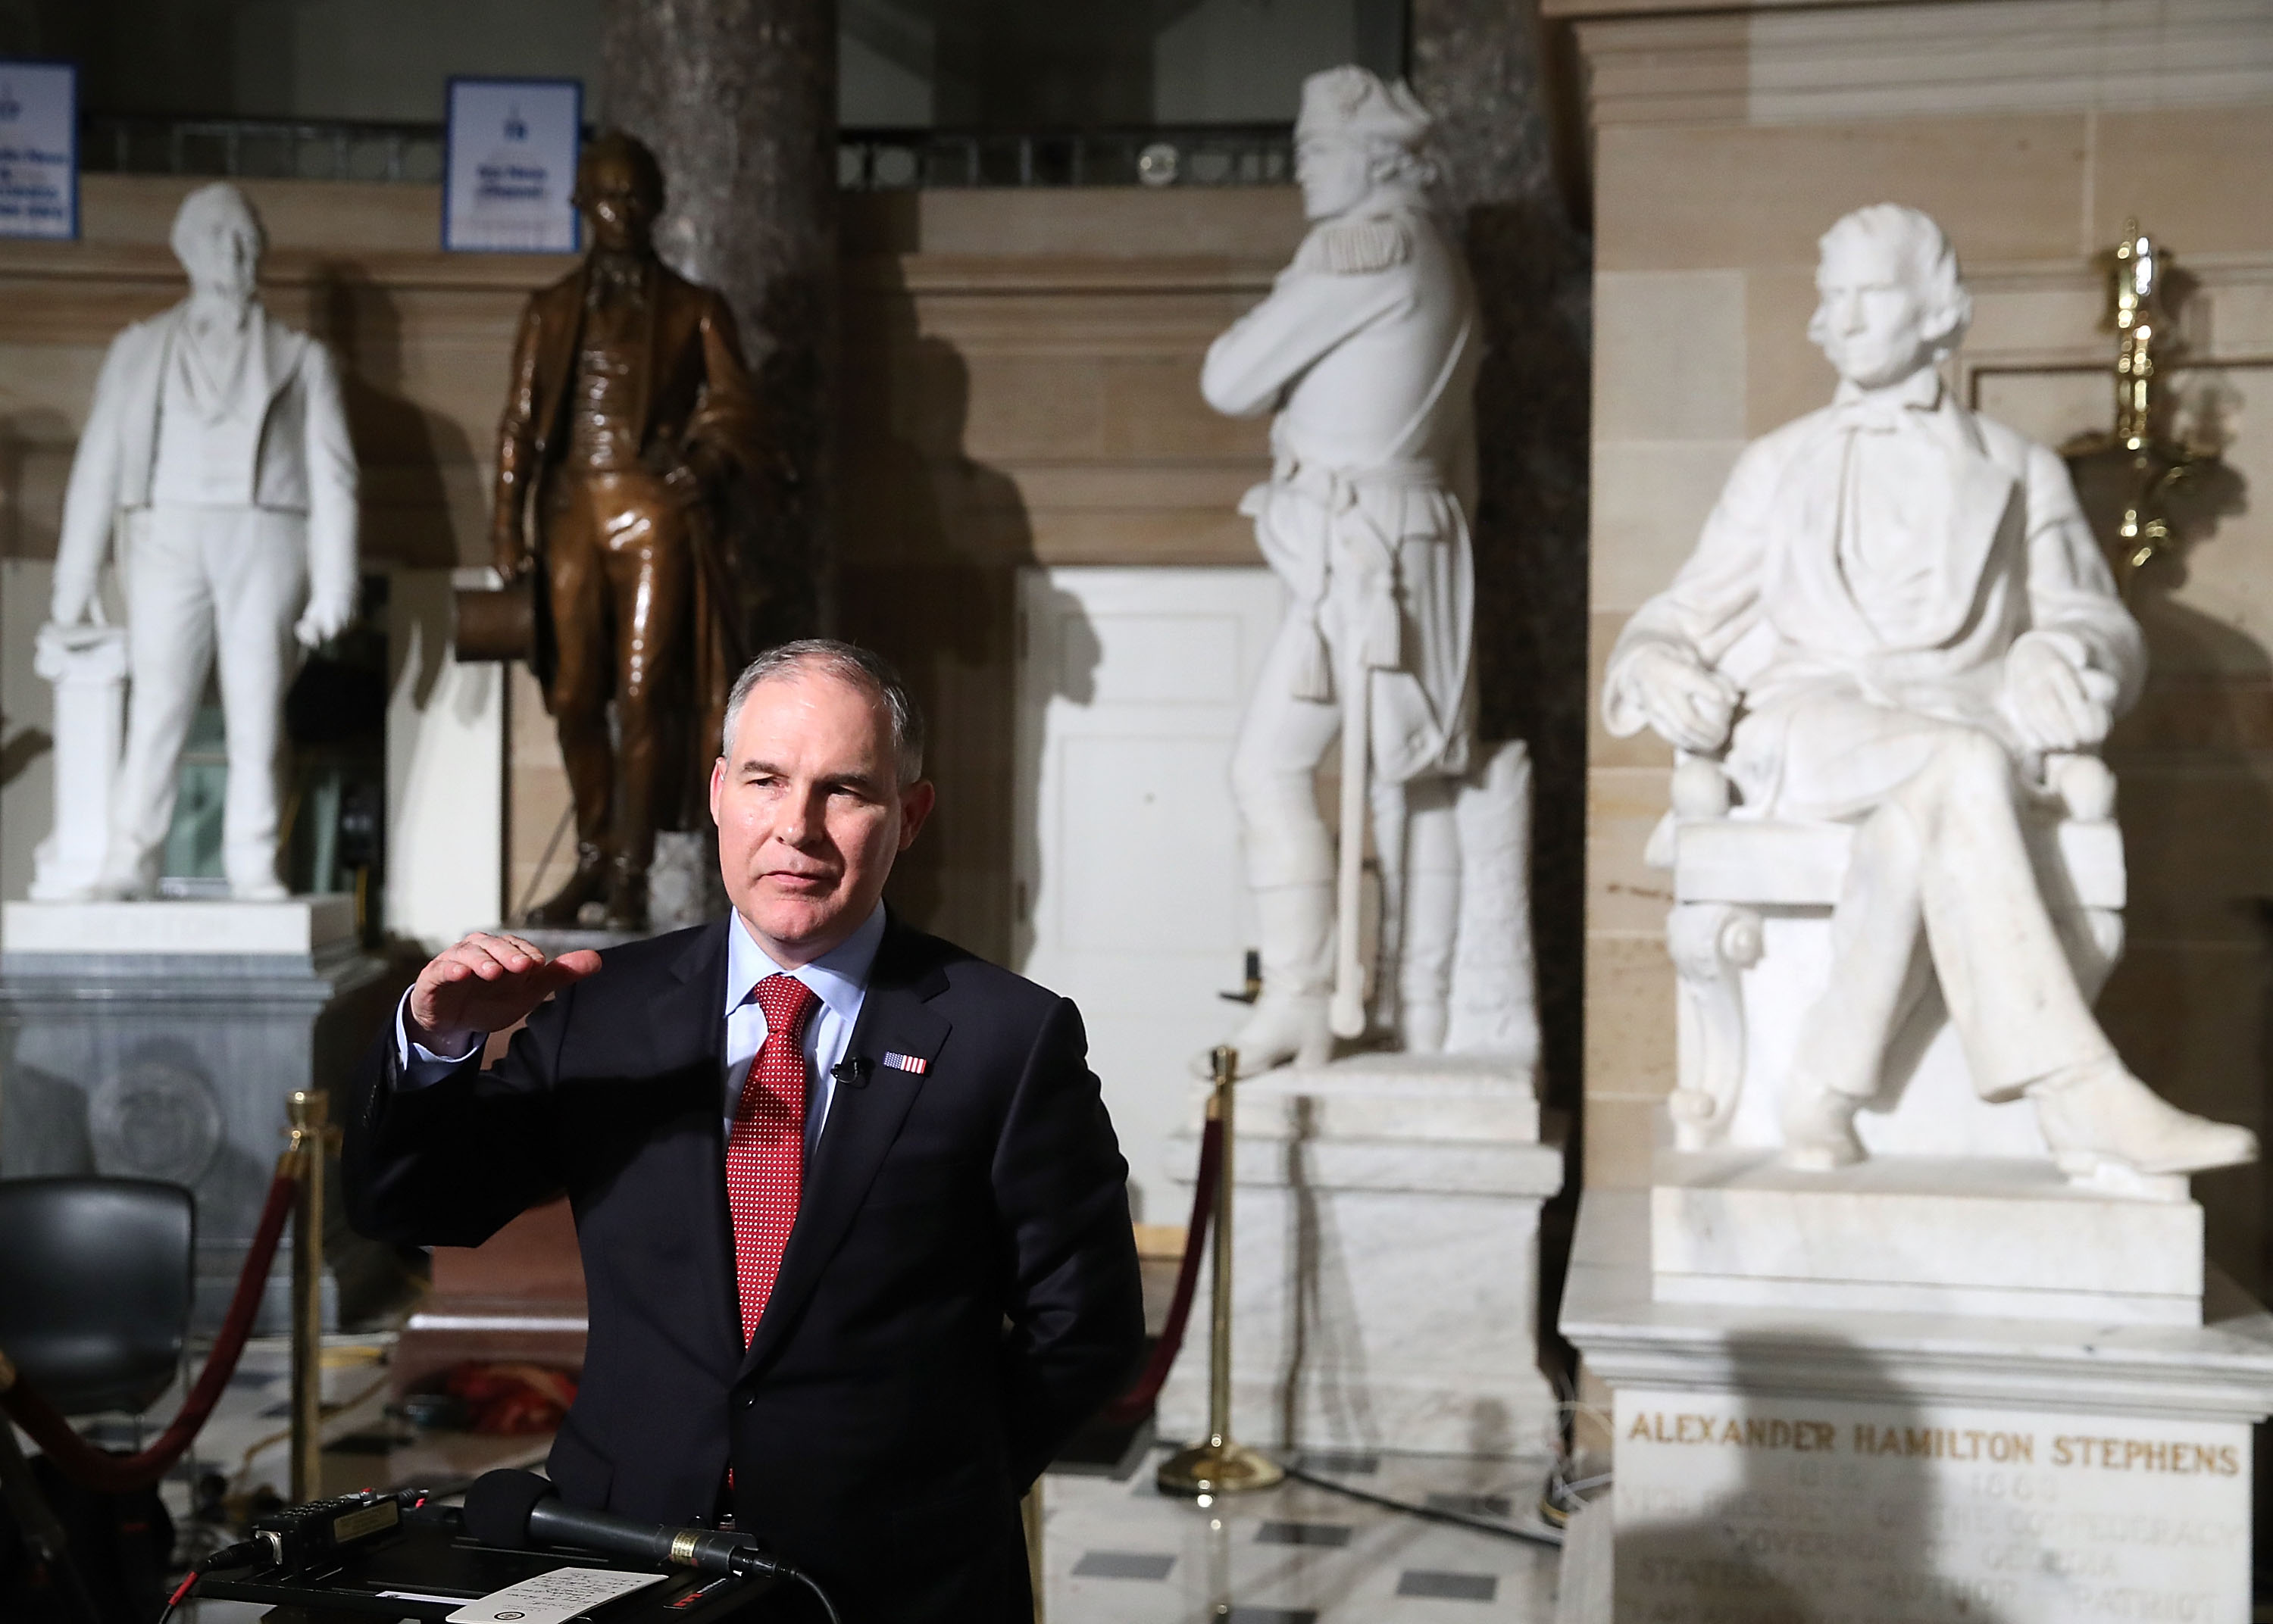 EPA Administrator Scott Pruitt does a television interview in Statuary Hall at the U.S. Capitol before President Donald Trump delivers a speech to a joint session of Congress on February 28, 2017 in Washington, D.C.